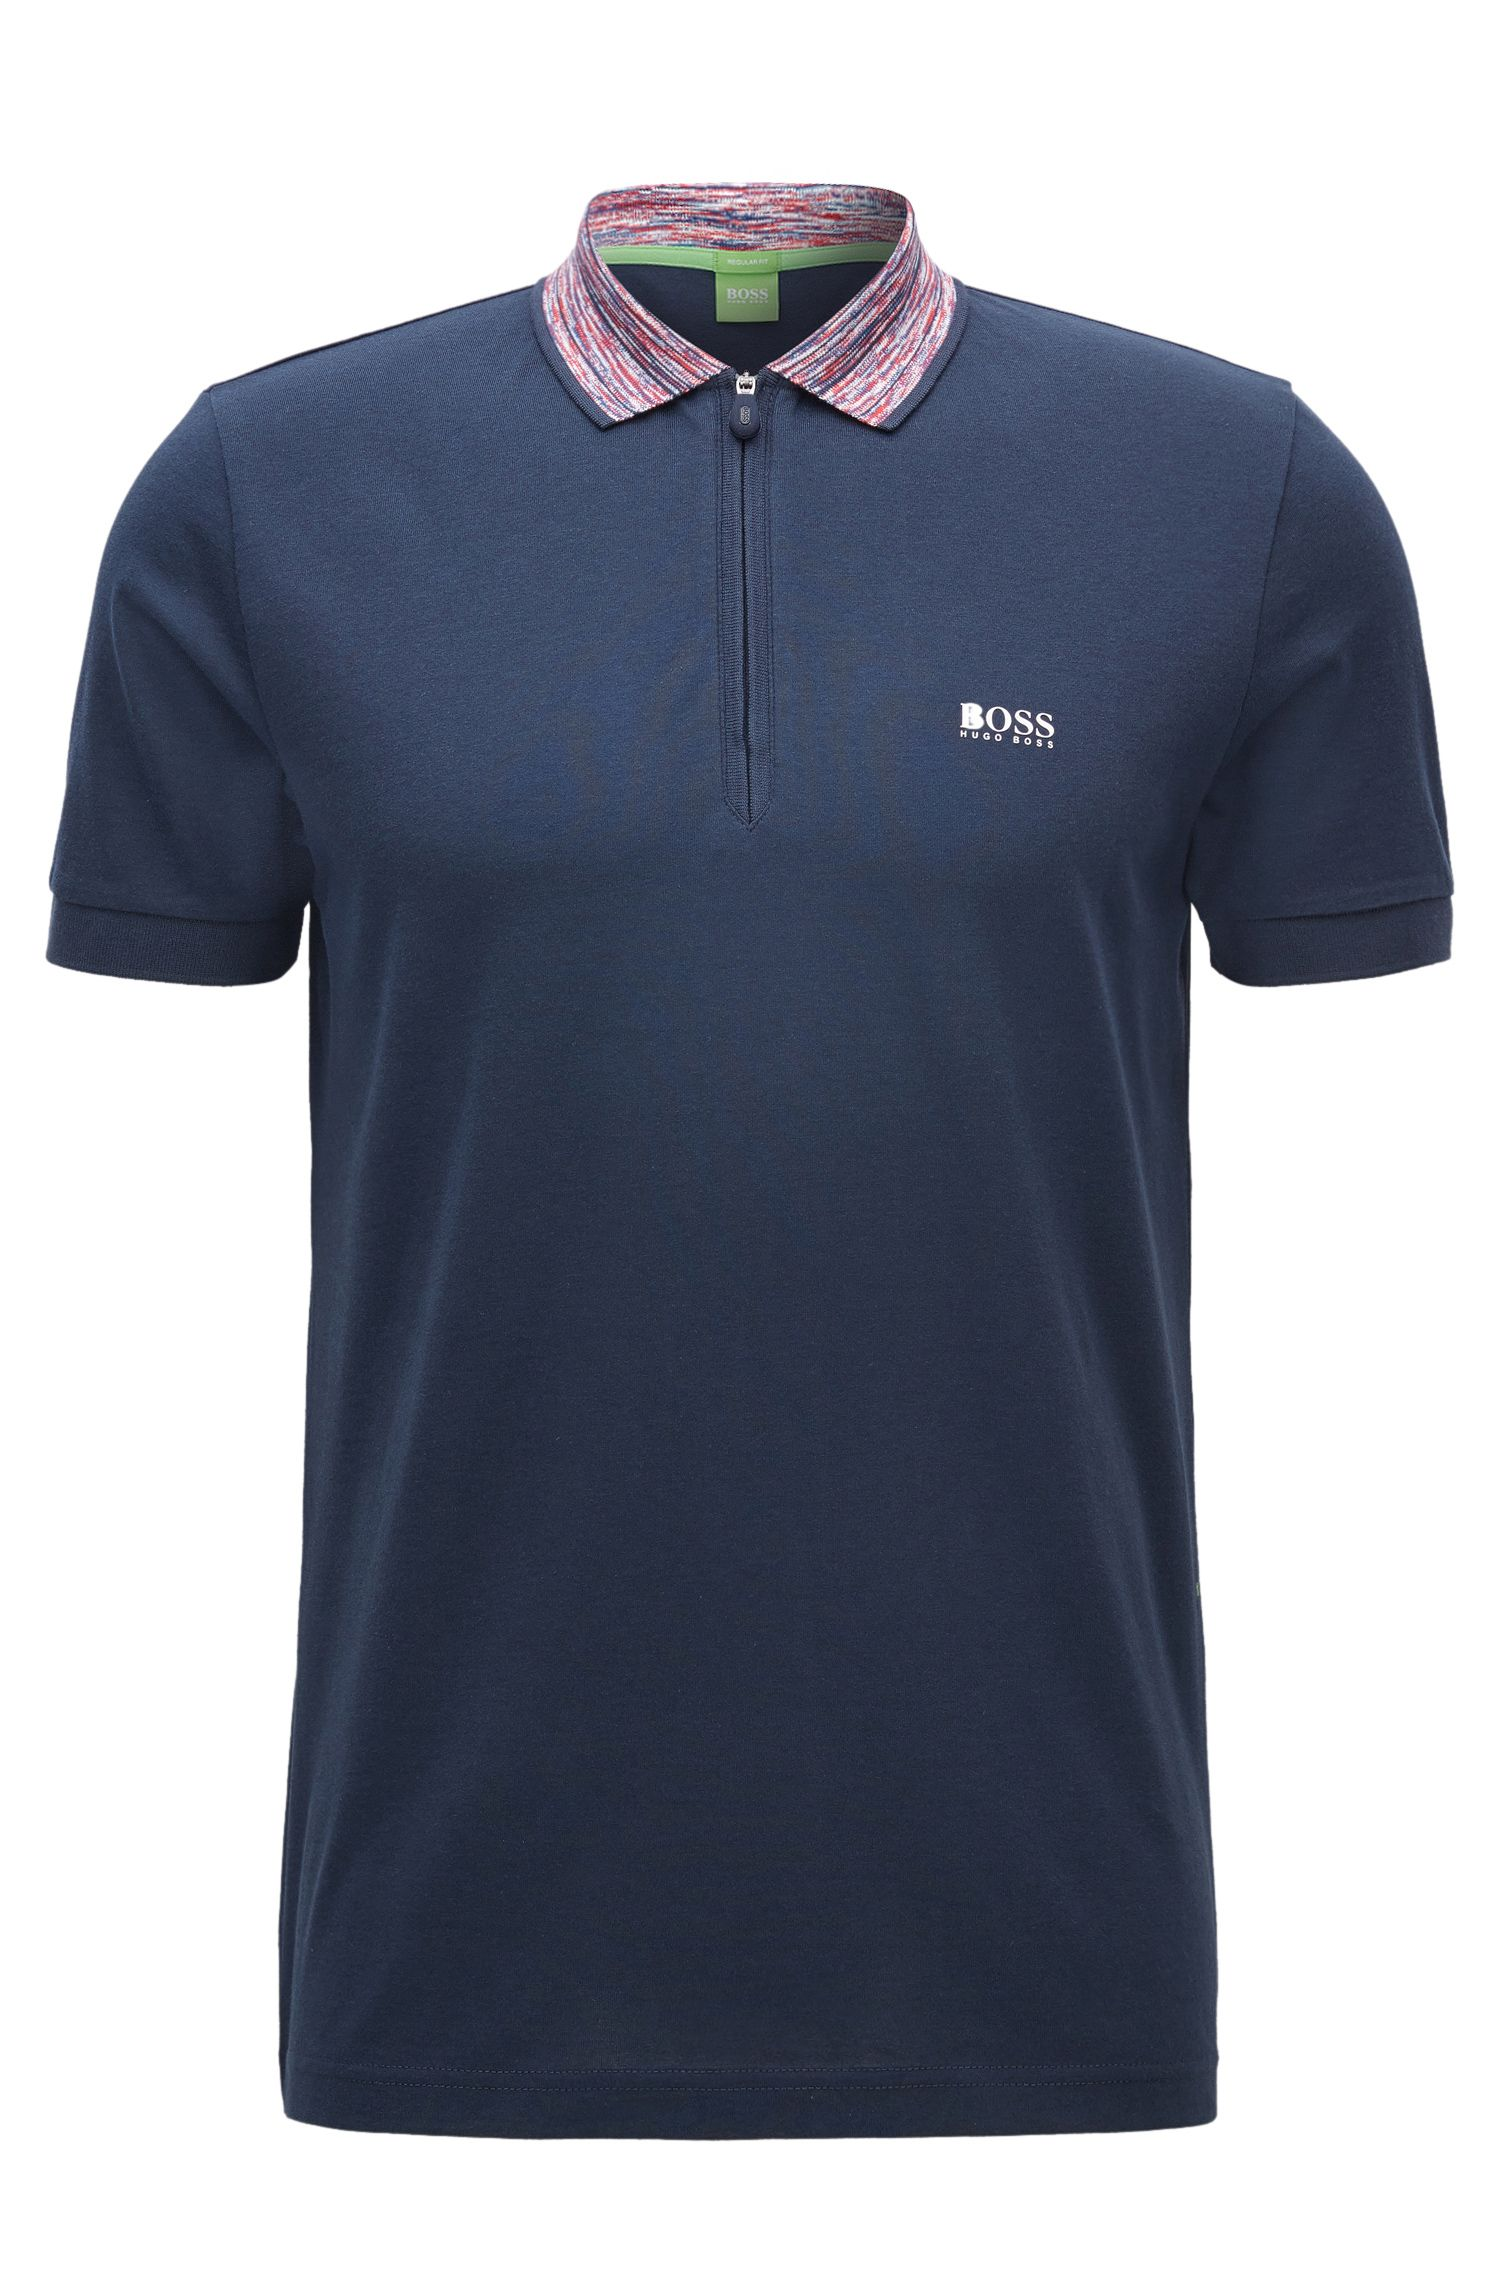 Regular-Fit Poloshirt aus beschichtetem Baumwoll-Mix